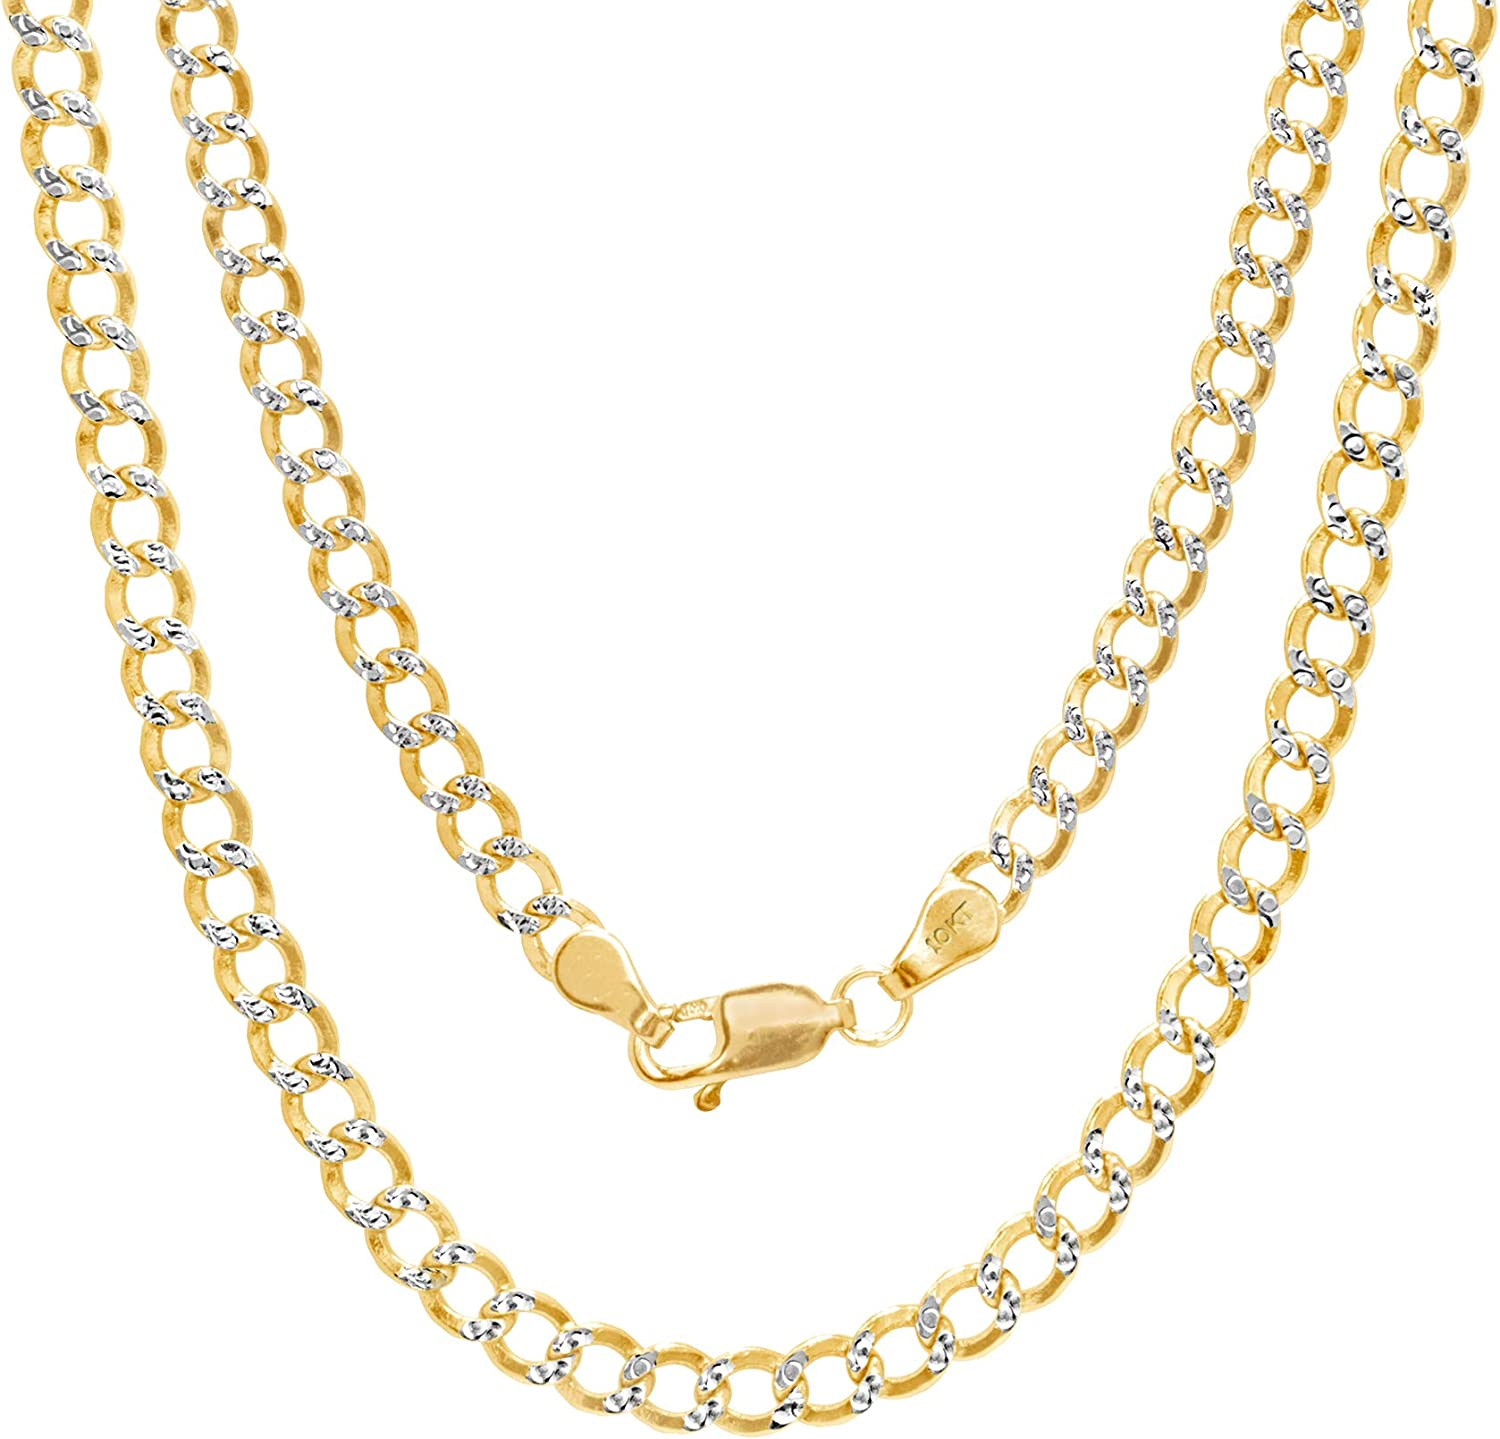 Nuragold 10k Yellow Gold 3.5mm Cuban Chain Curb Link Diamond Cut Pave Two Tone Pendant Necklace, Mens Womens Lobster Lock 16